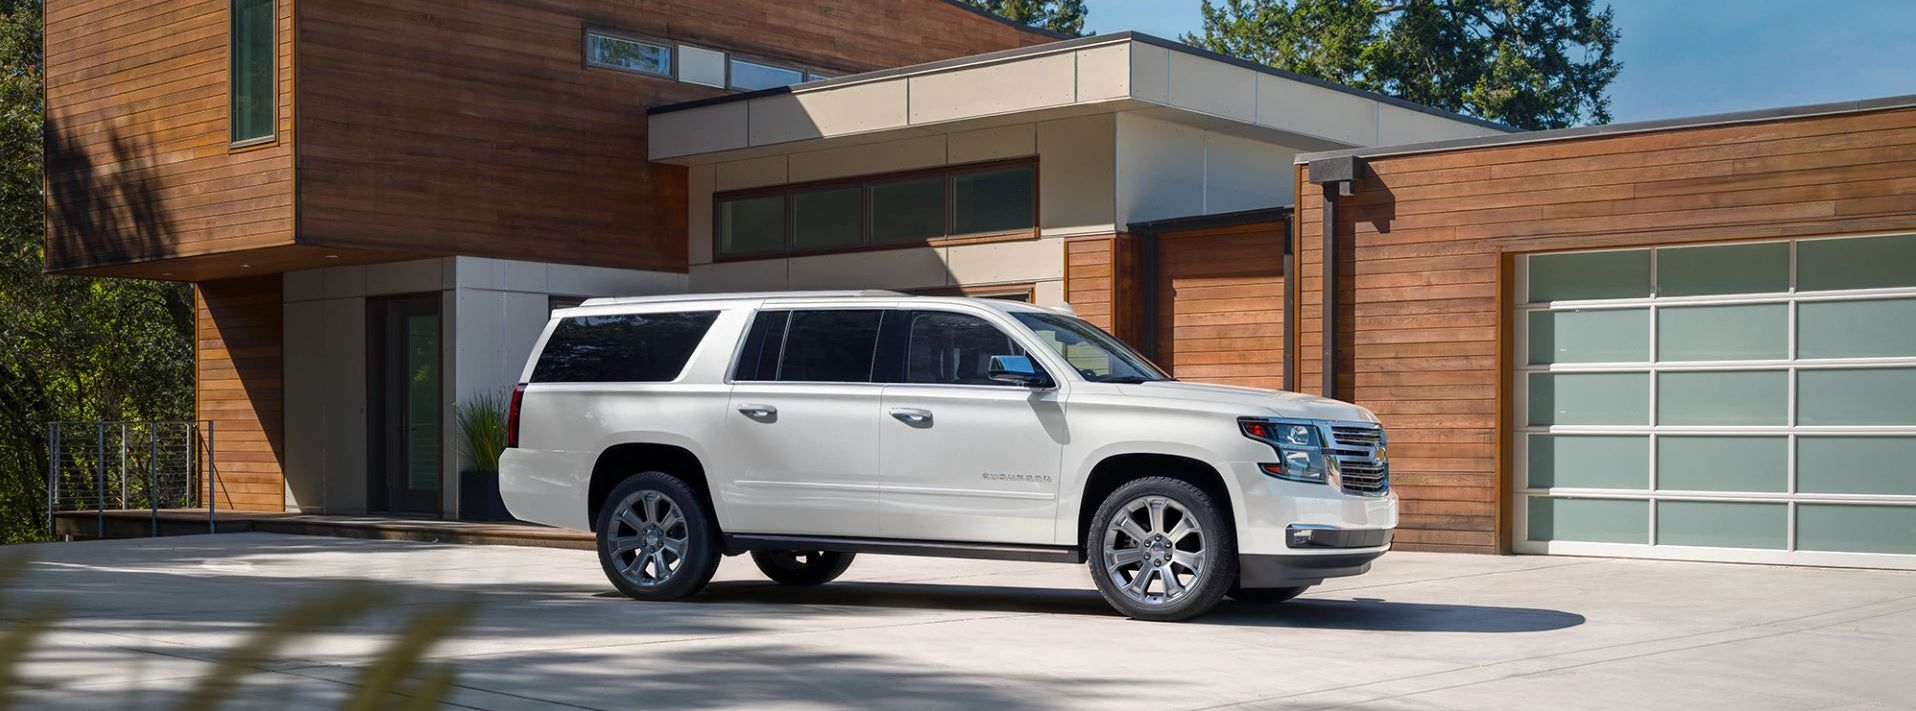 2020 chevrolet suburban for sale near tulsa ok 2020 chevrolet suburban for sale near